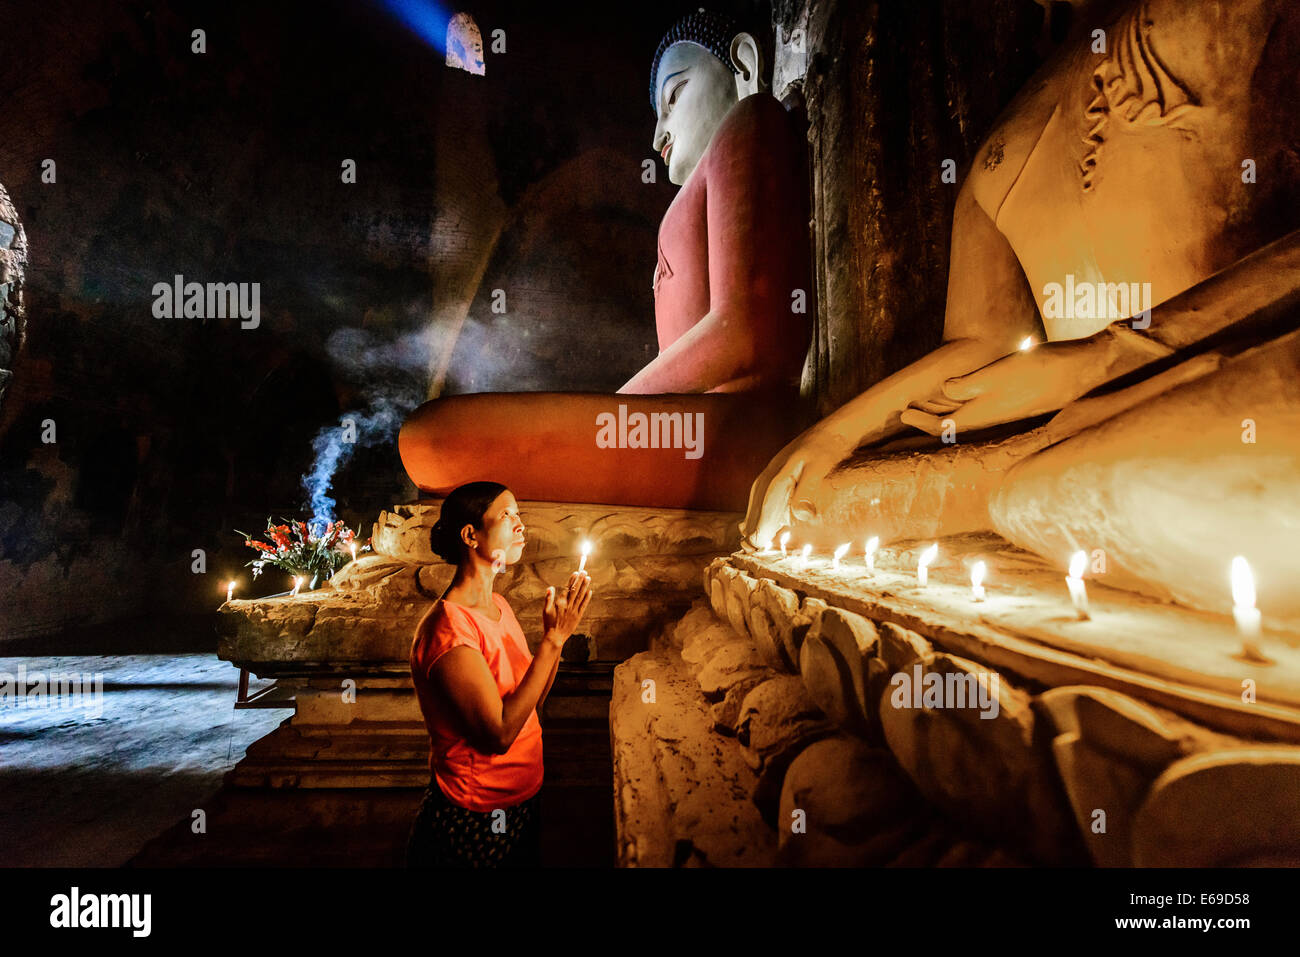 Asian woman lighting candle in temple - Stock Image